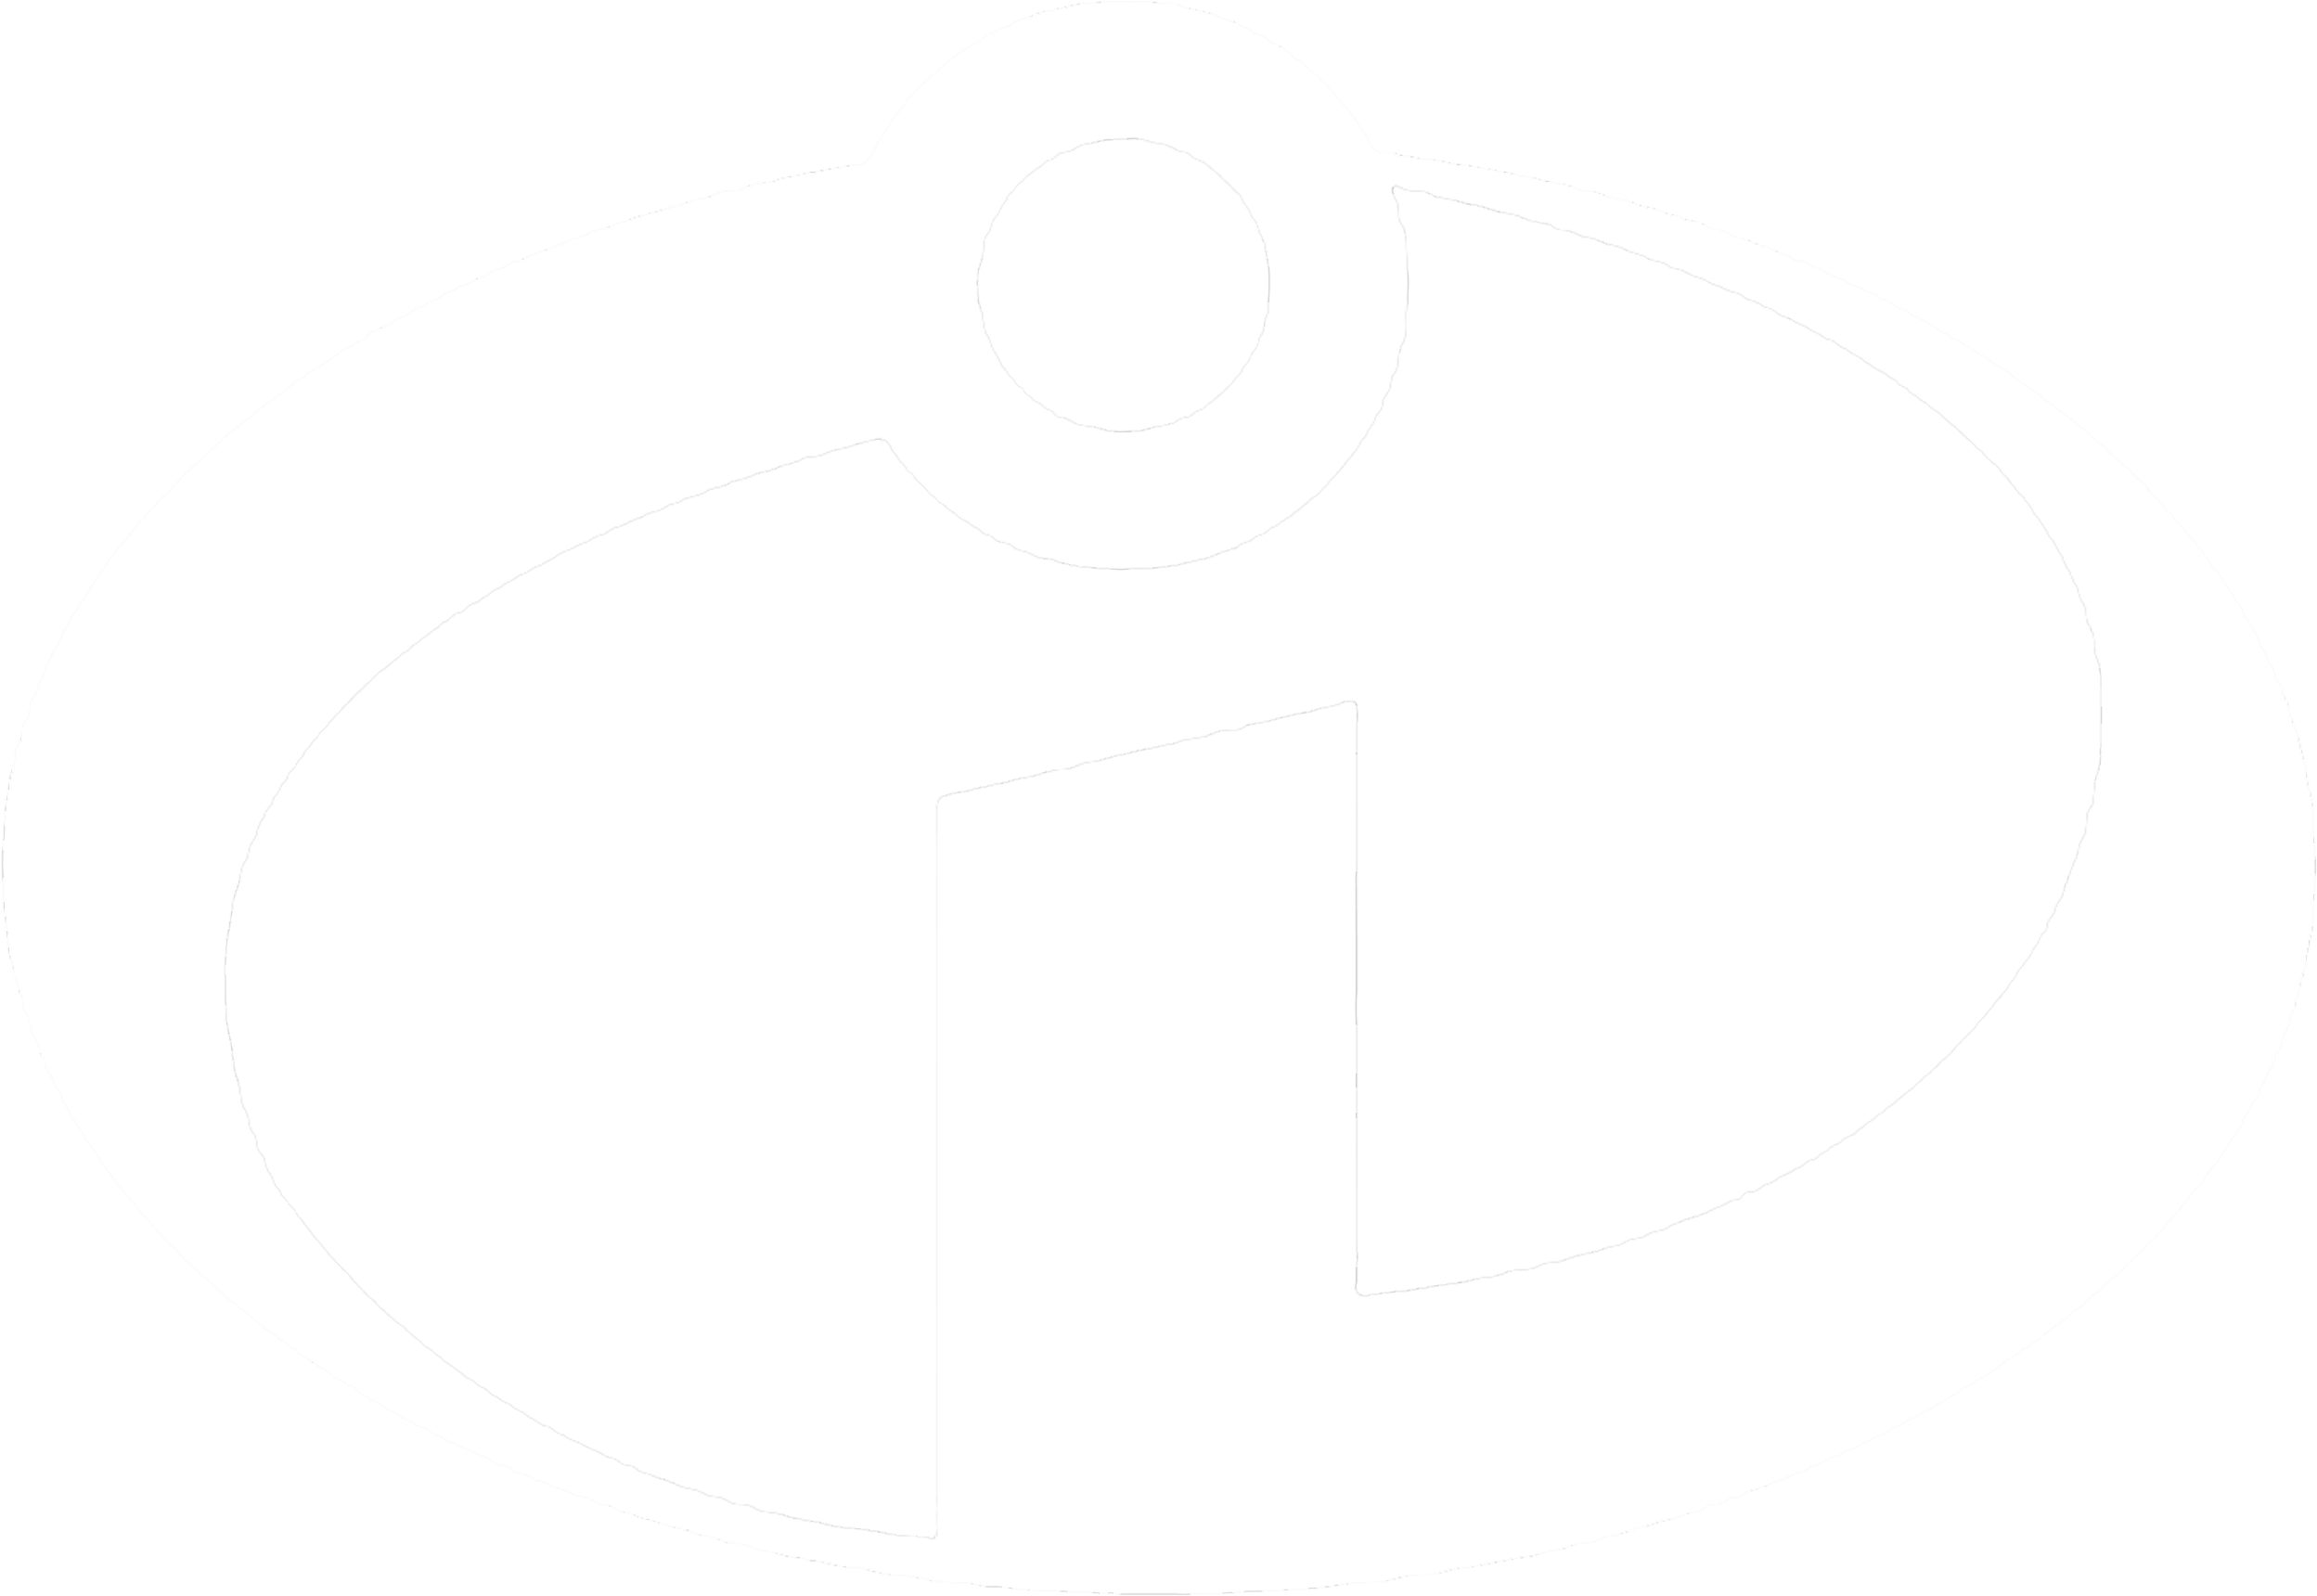 Download Incredibles Logo Incredibles Decal Png Image With No Background Pngkey Com